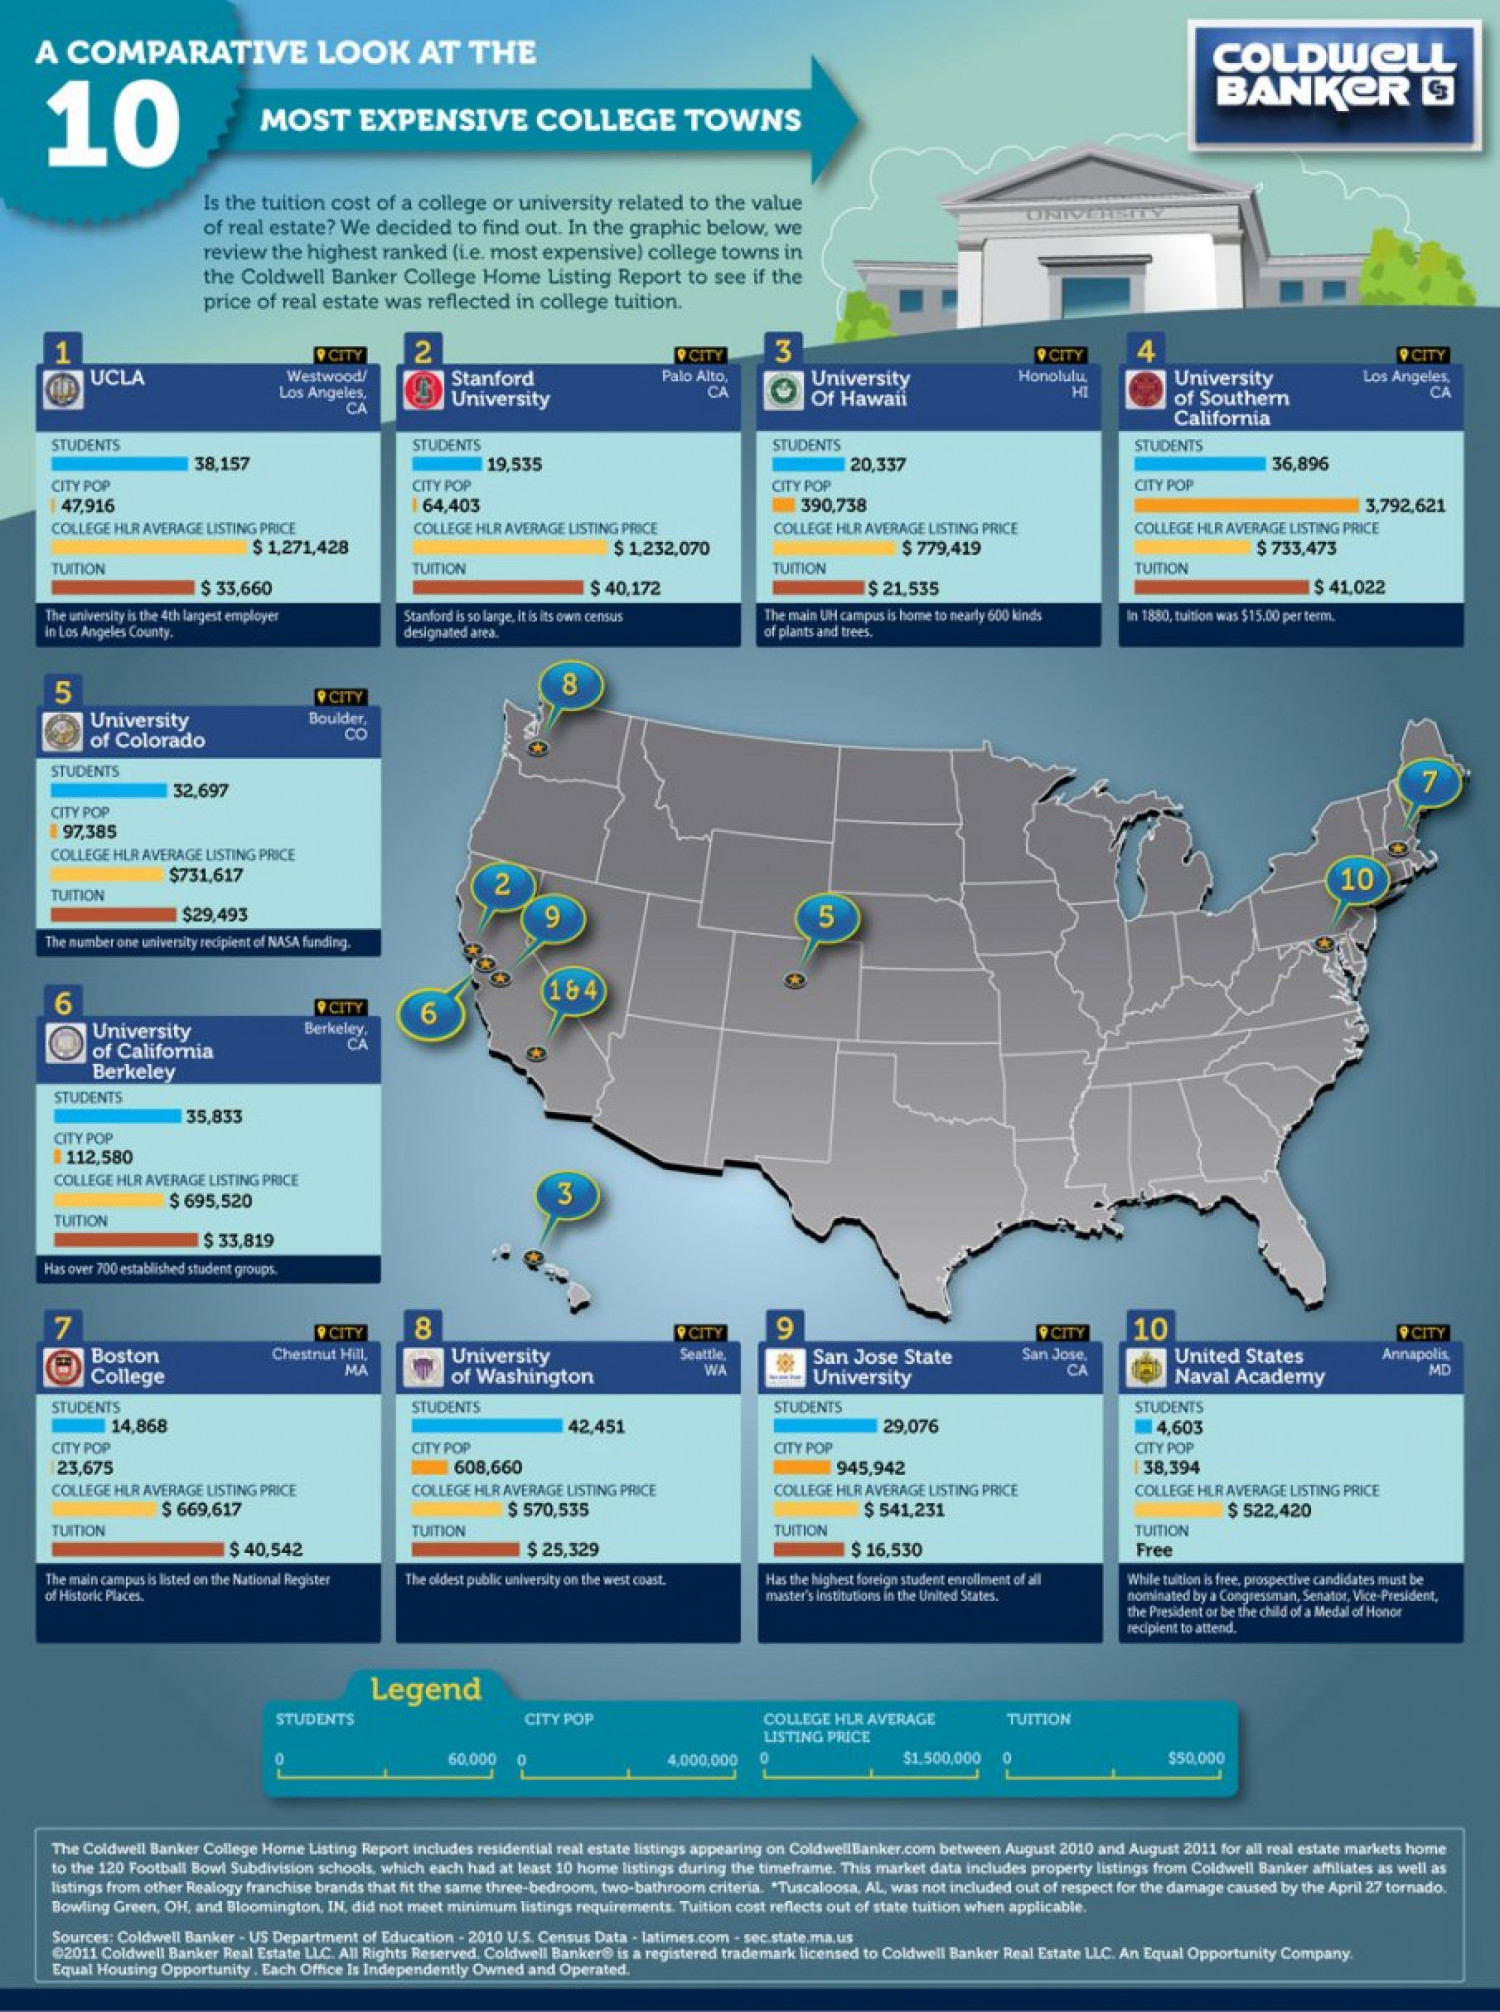 2011 Most Expensive College Towns Infographic